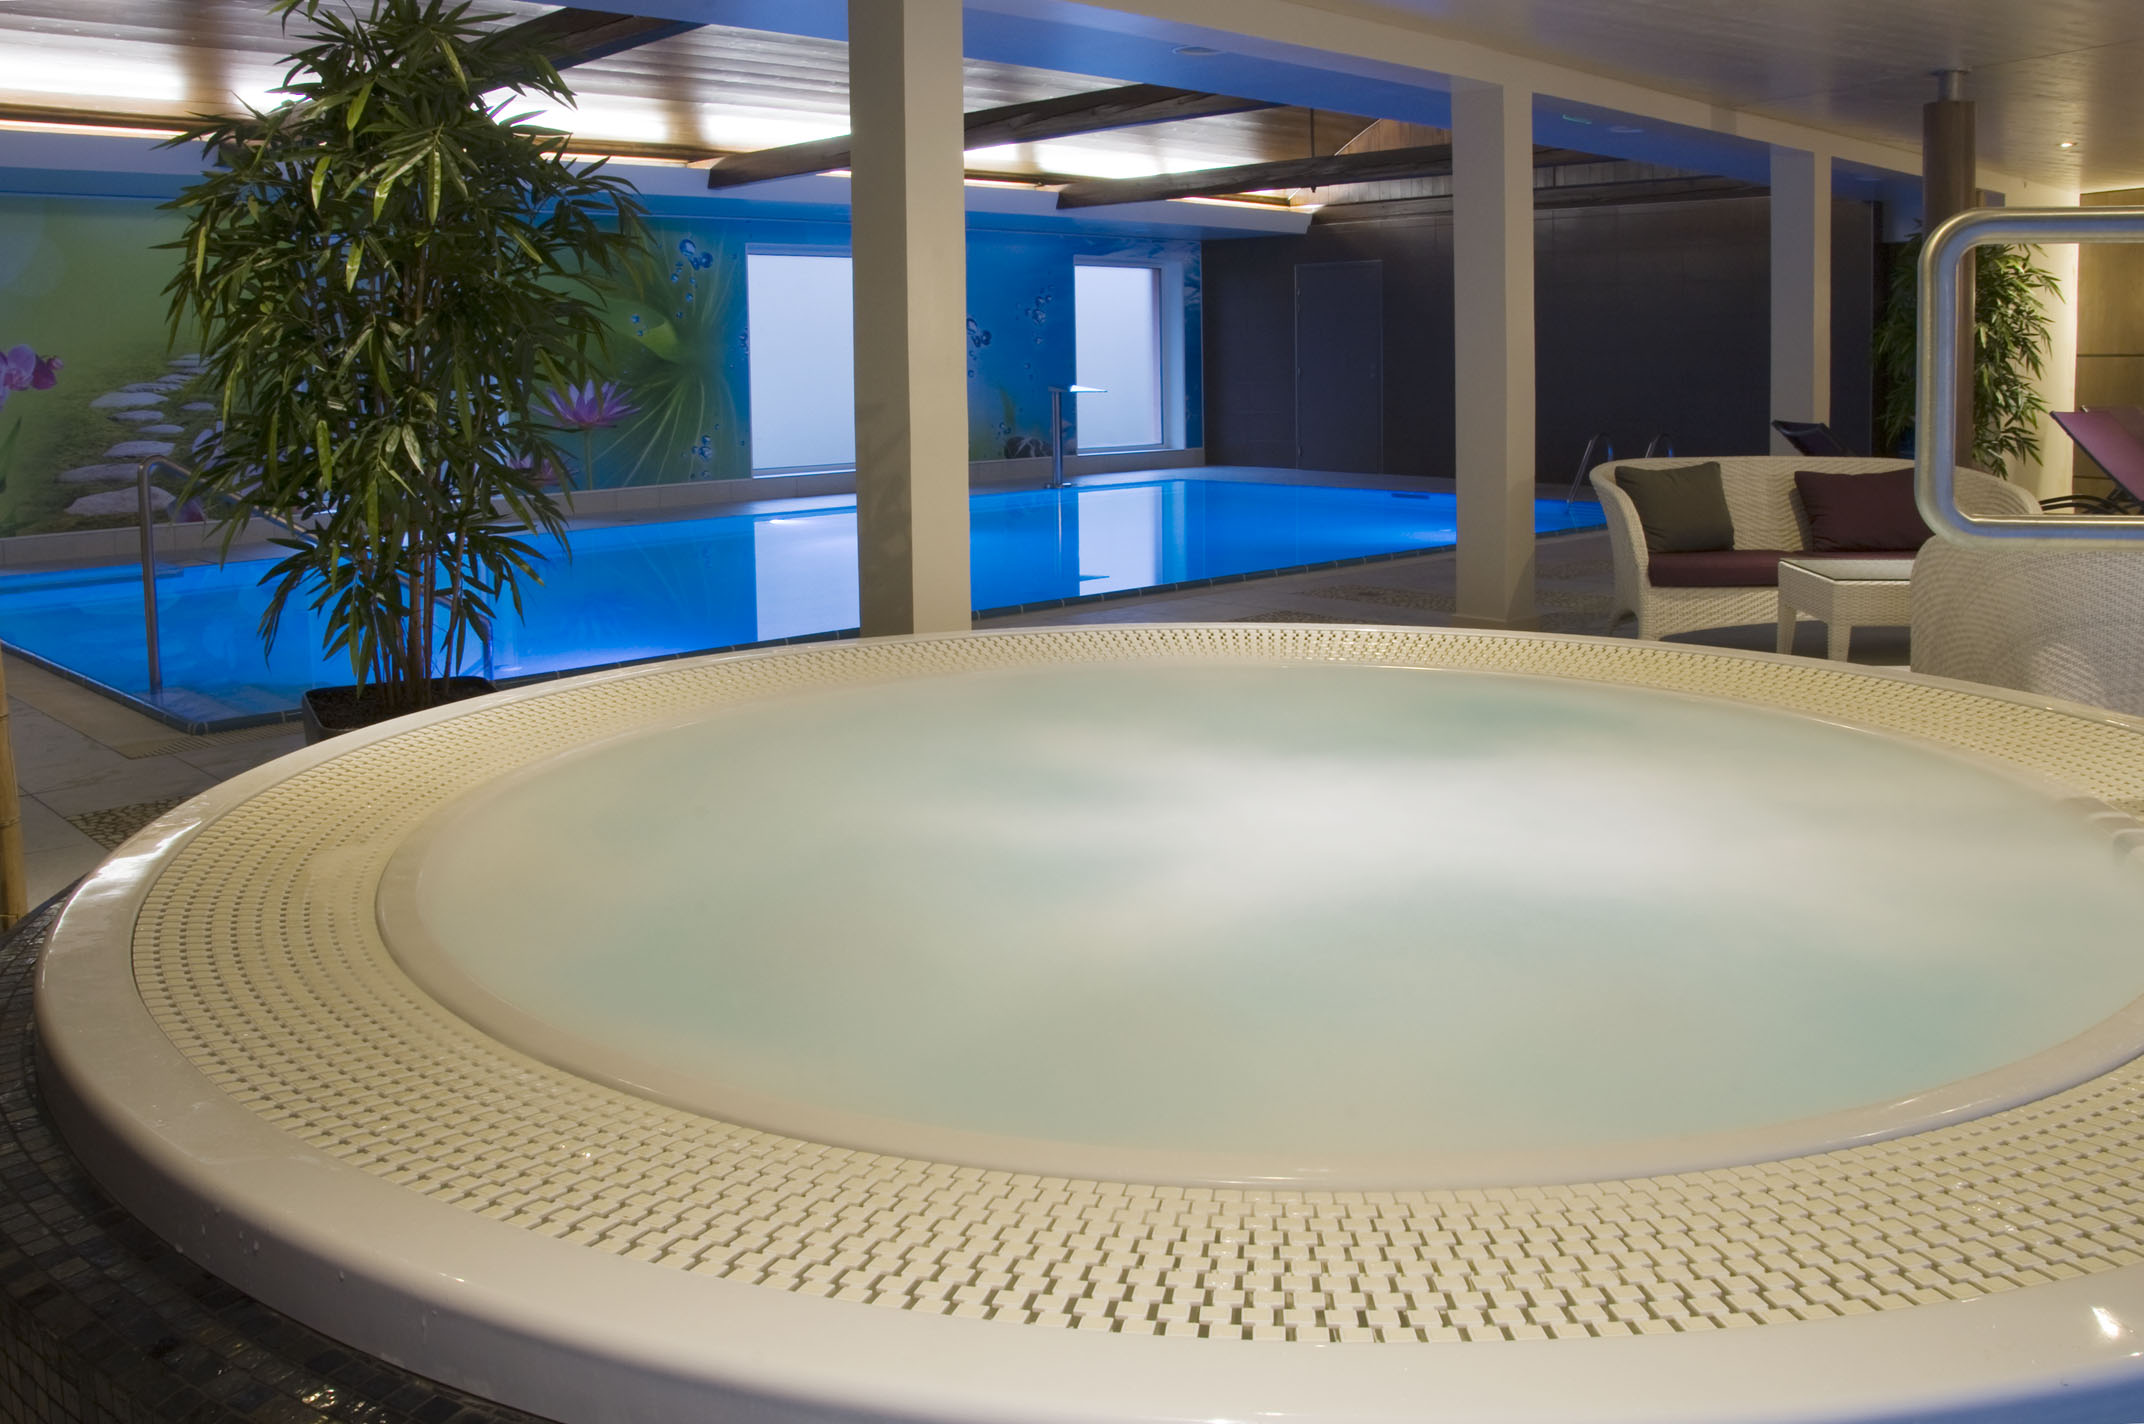 Package : Relaxation and wellness in a 3-star Spa hotel